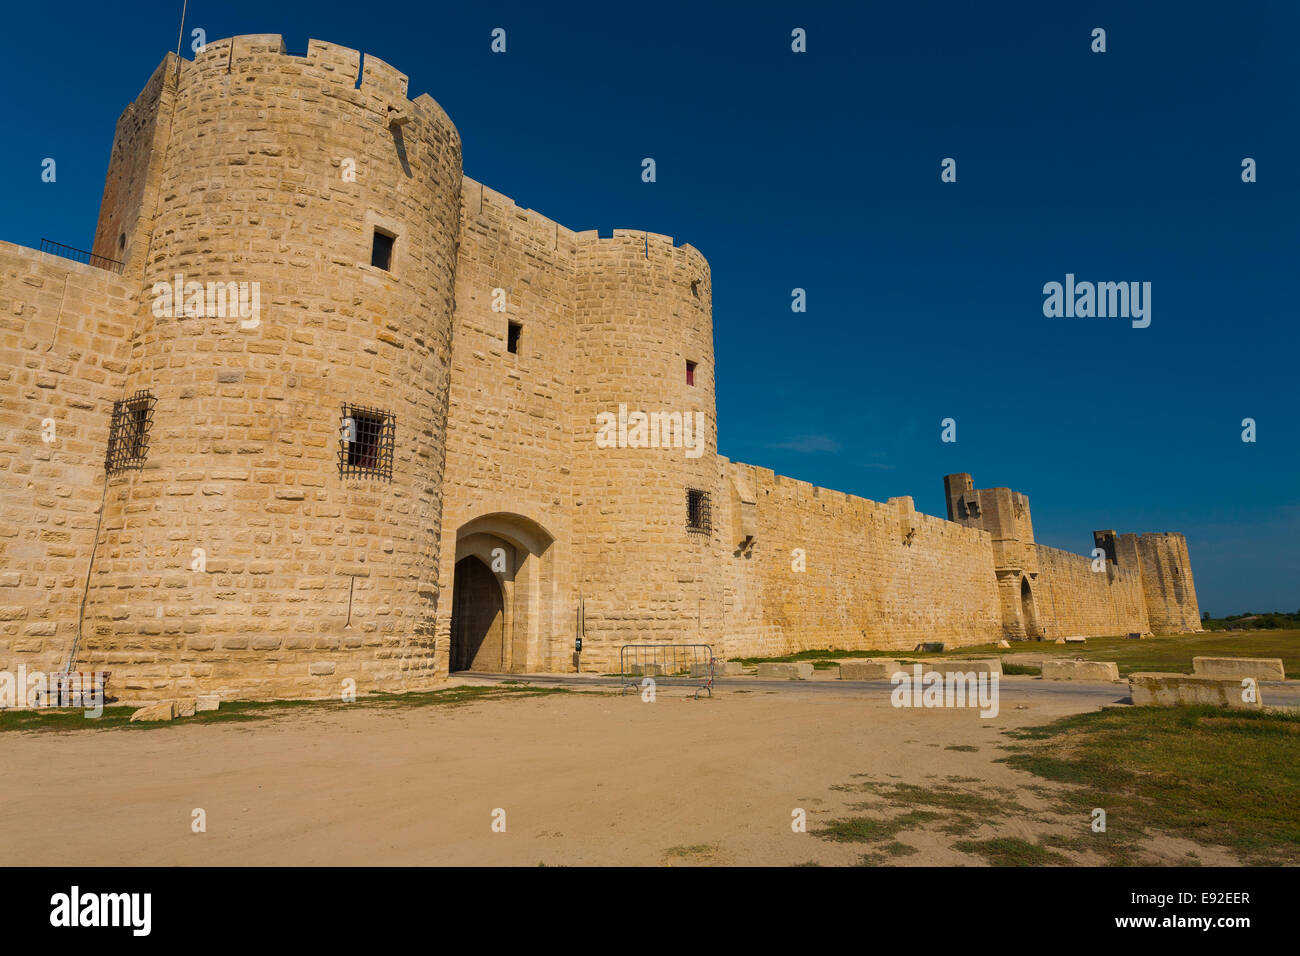 Aigues Mortes Old City Wall Gate H - Stock Image